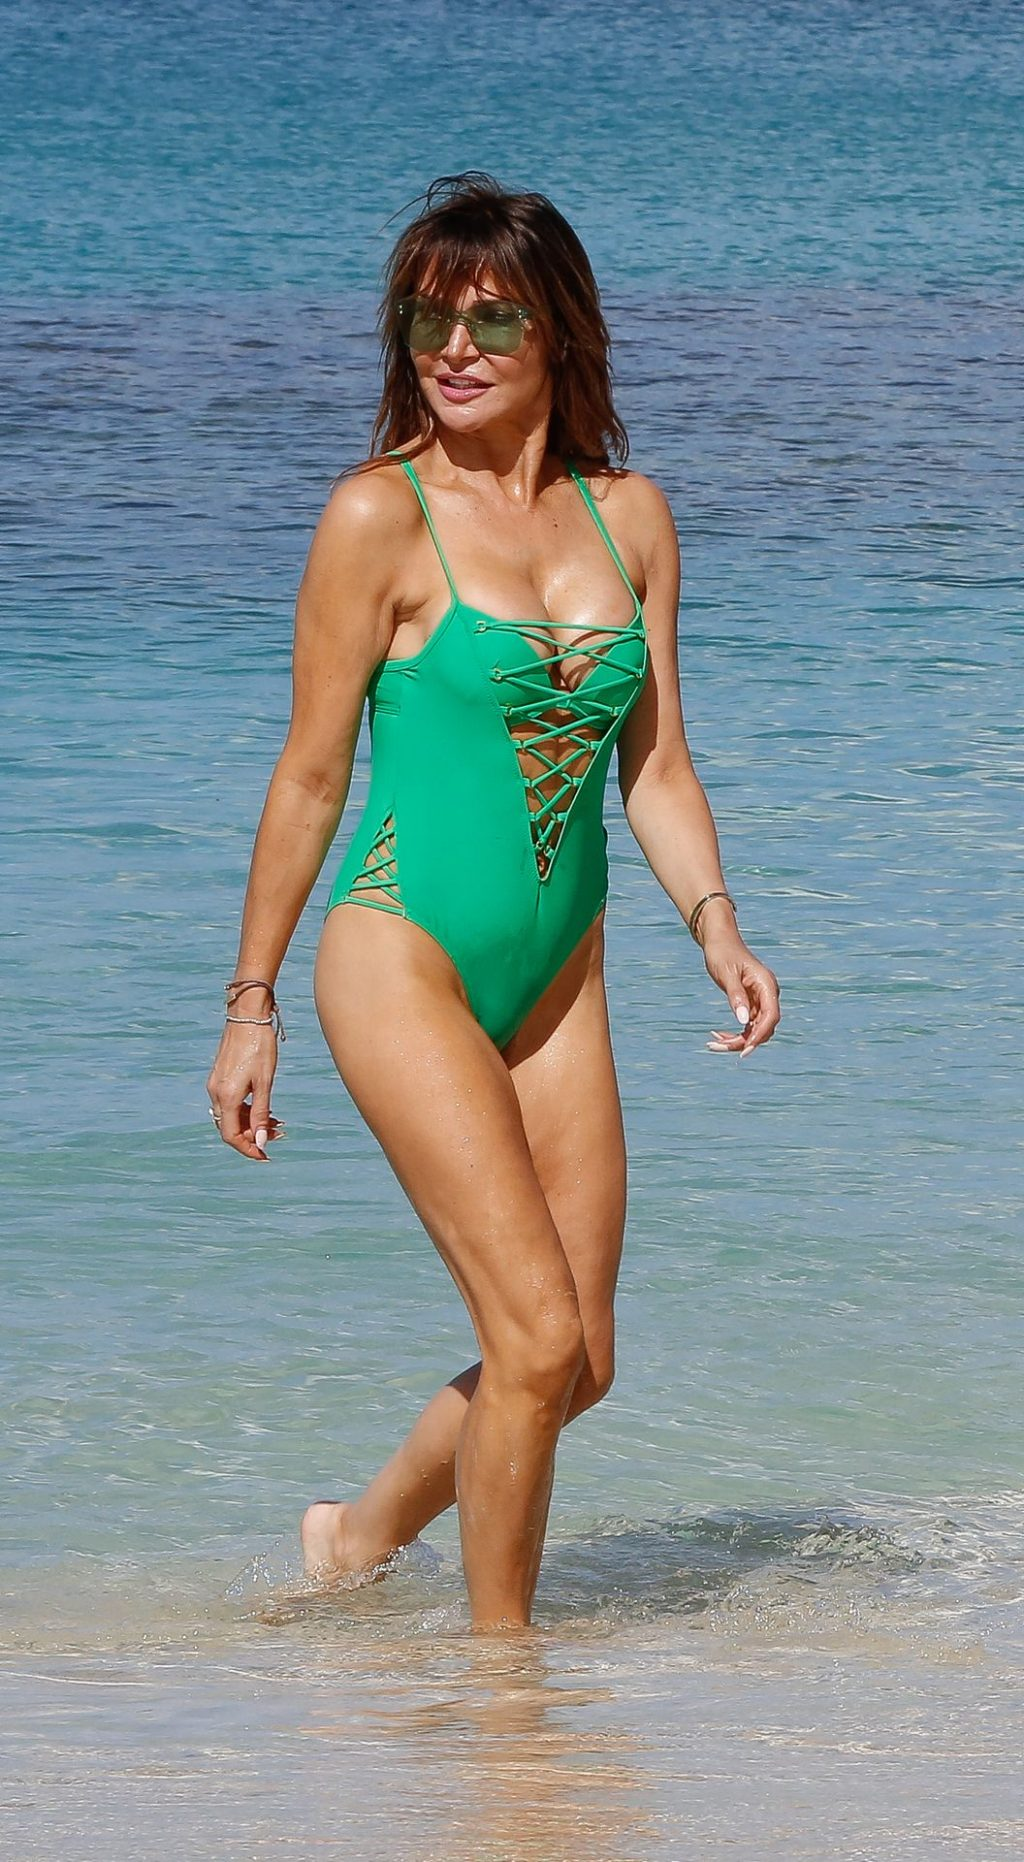 Continue reading Lizzie Cundy Cleavage